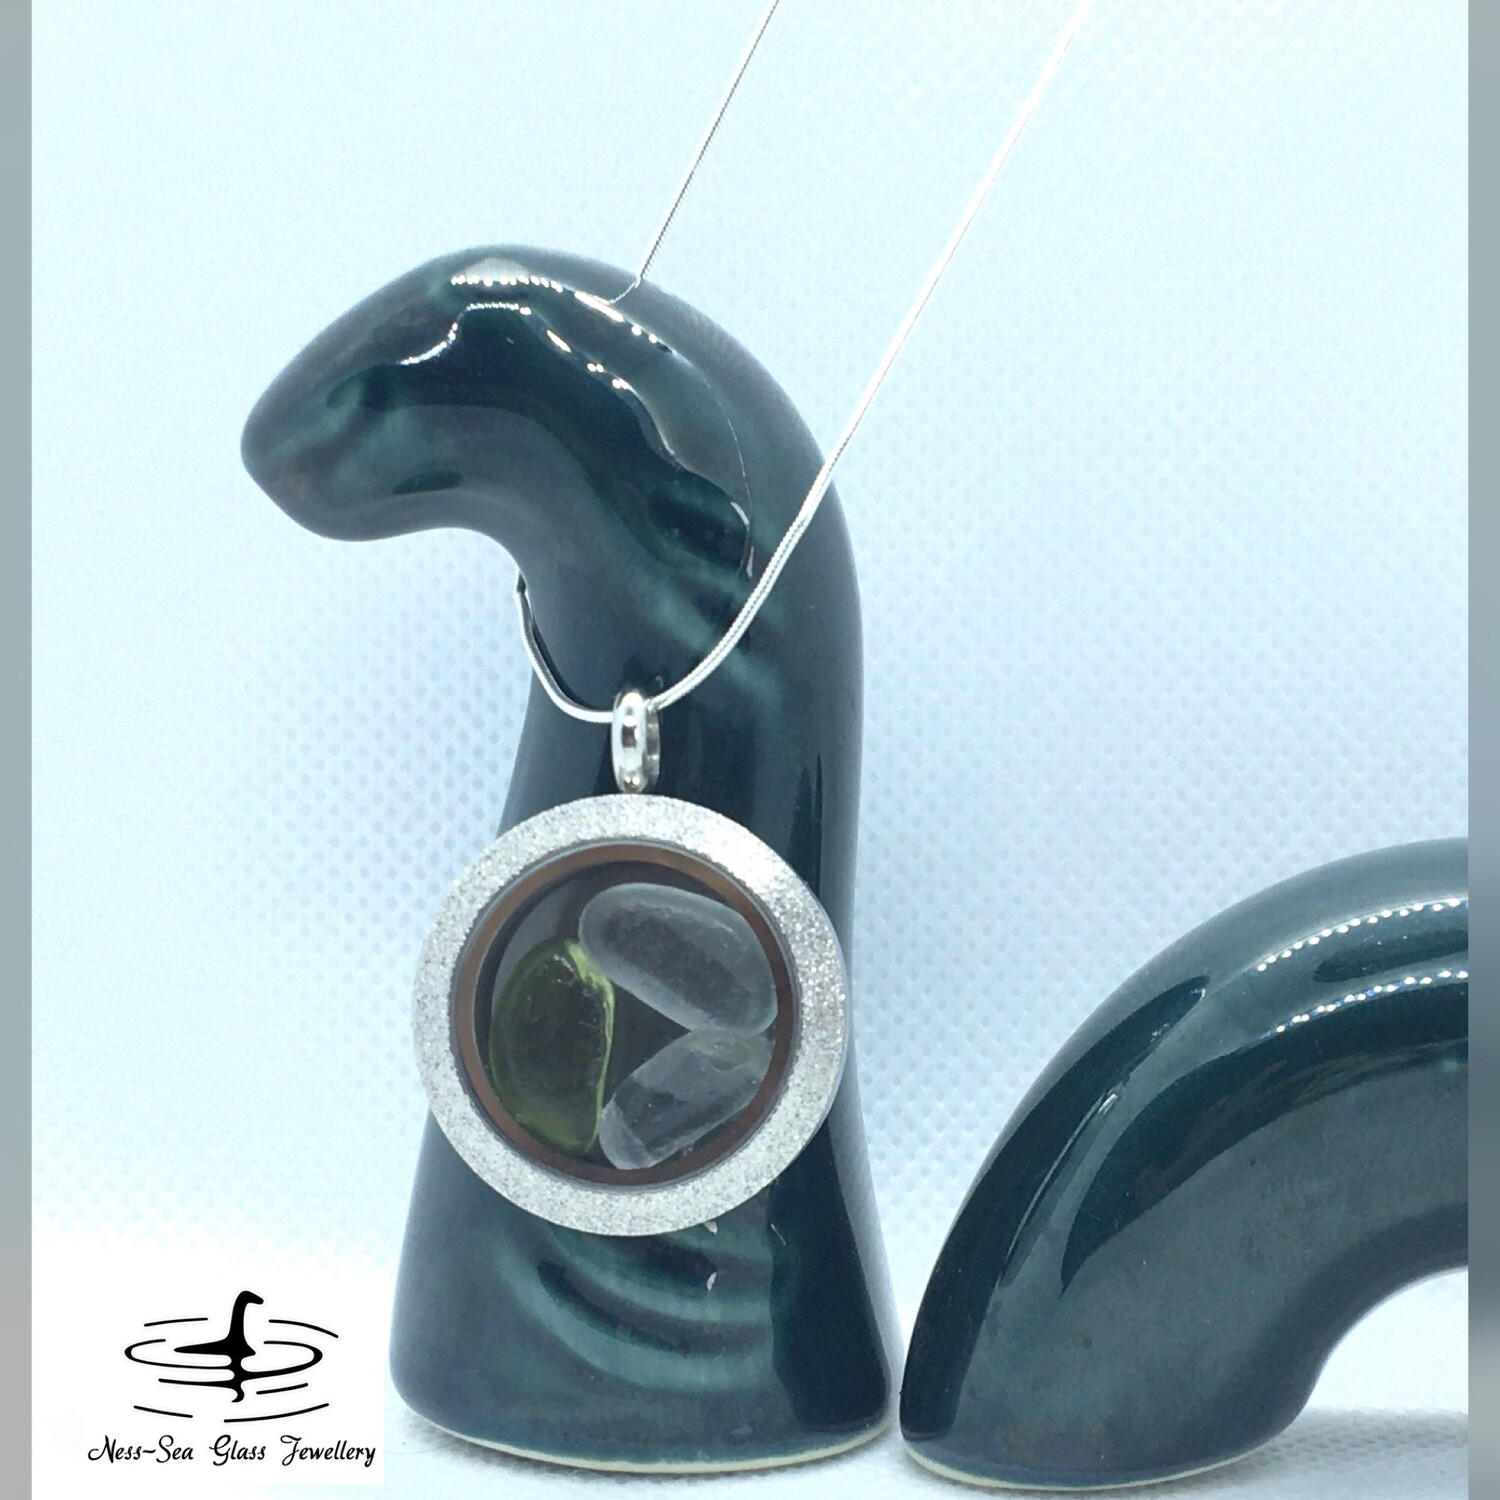 Loch Ness Sea Glass Stainless Steel Shimmer Floating Locket Necklace with Sterling Silver Snake Chain